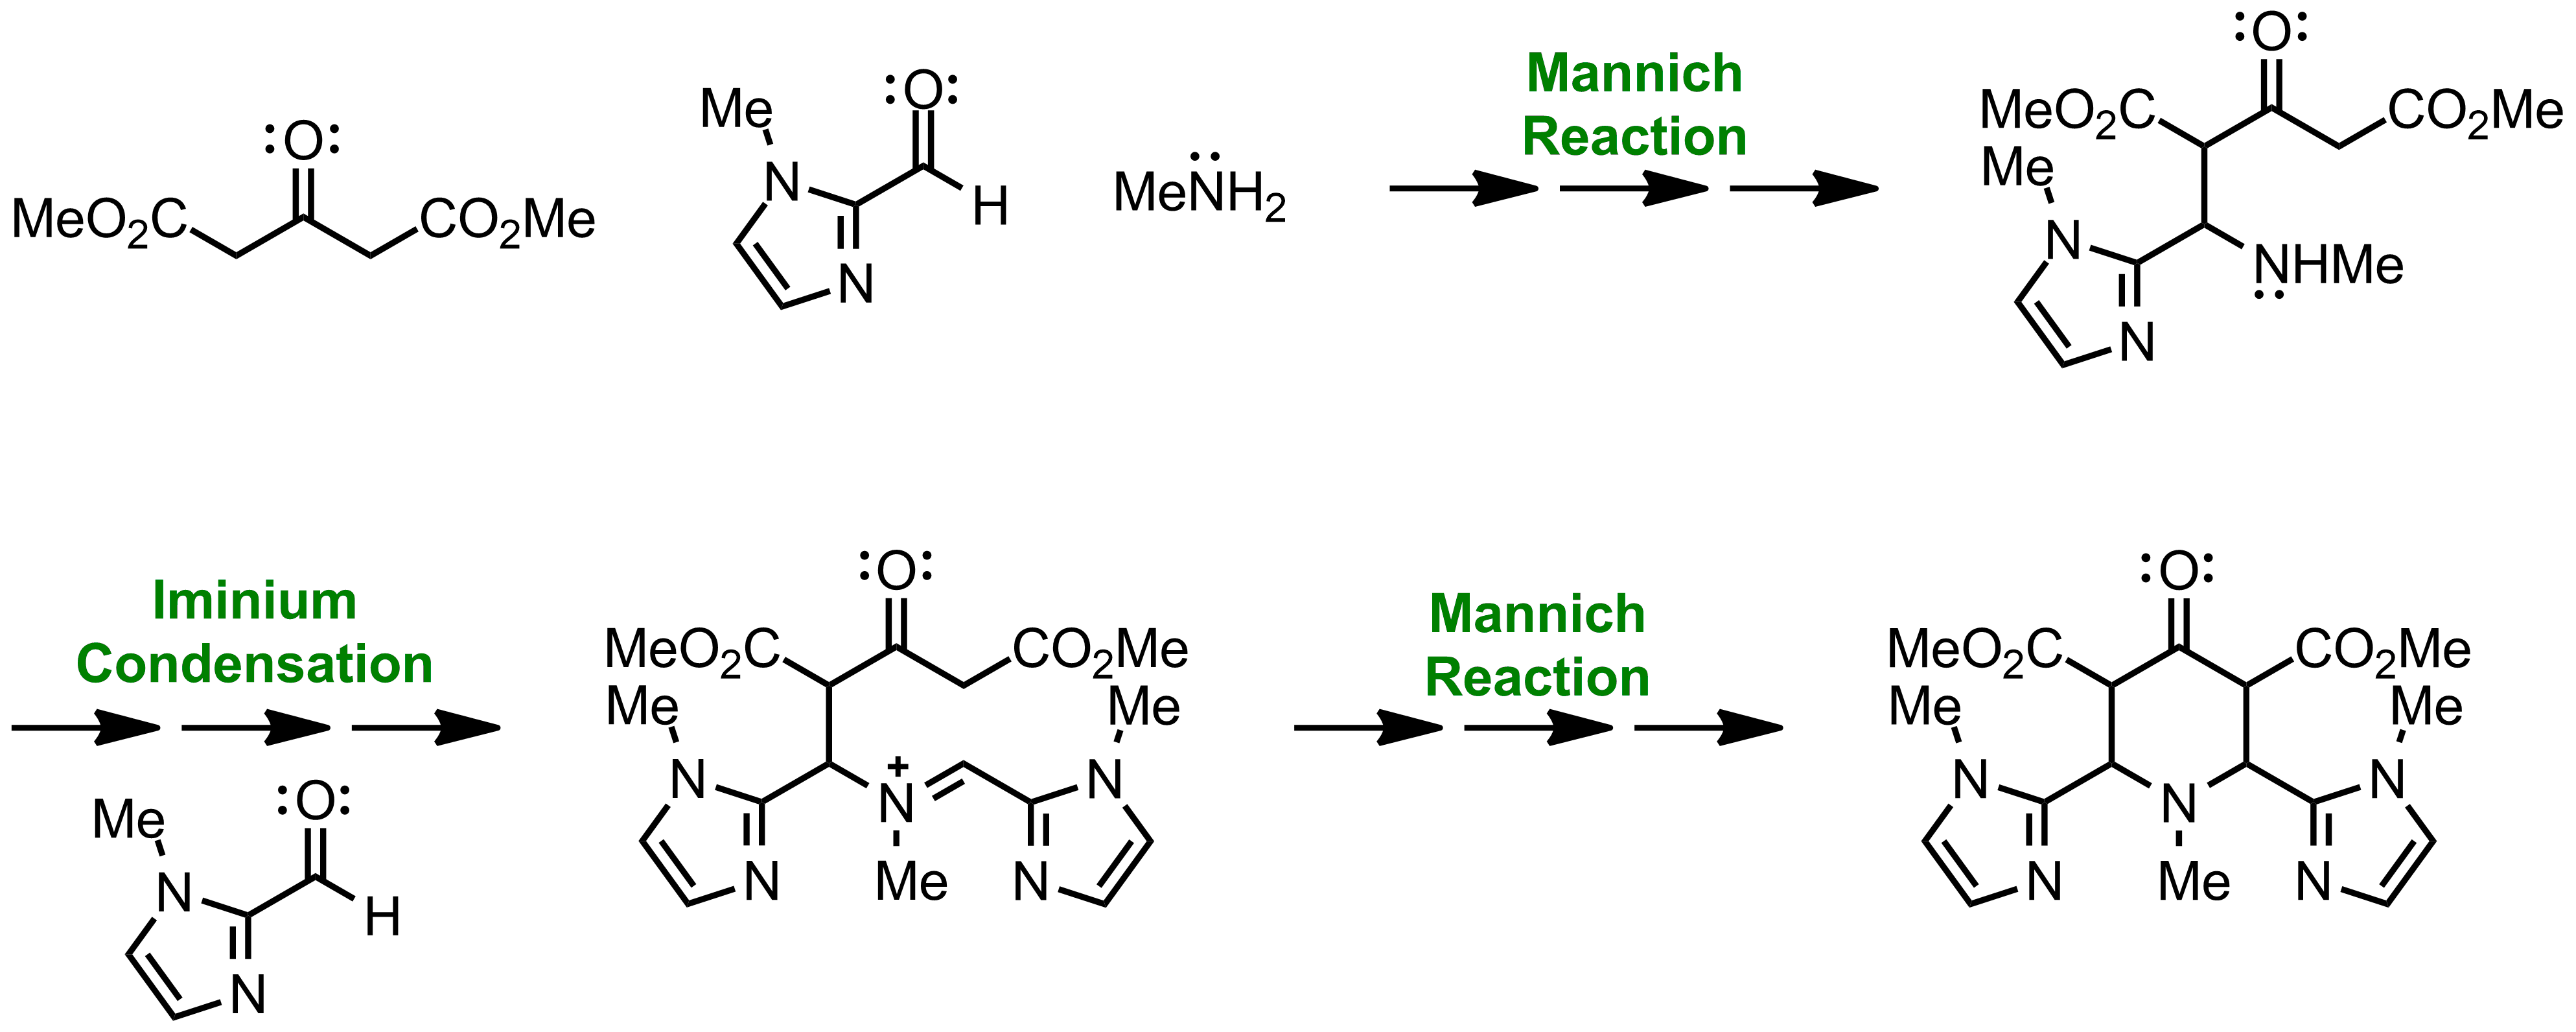 Mechanism of the Petrenko-Kritschenko Piperidone Synthesis